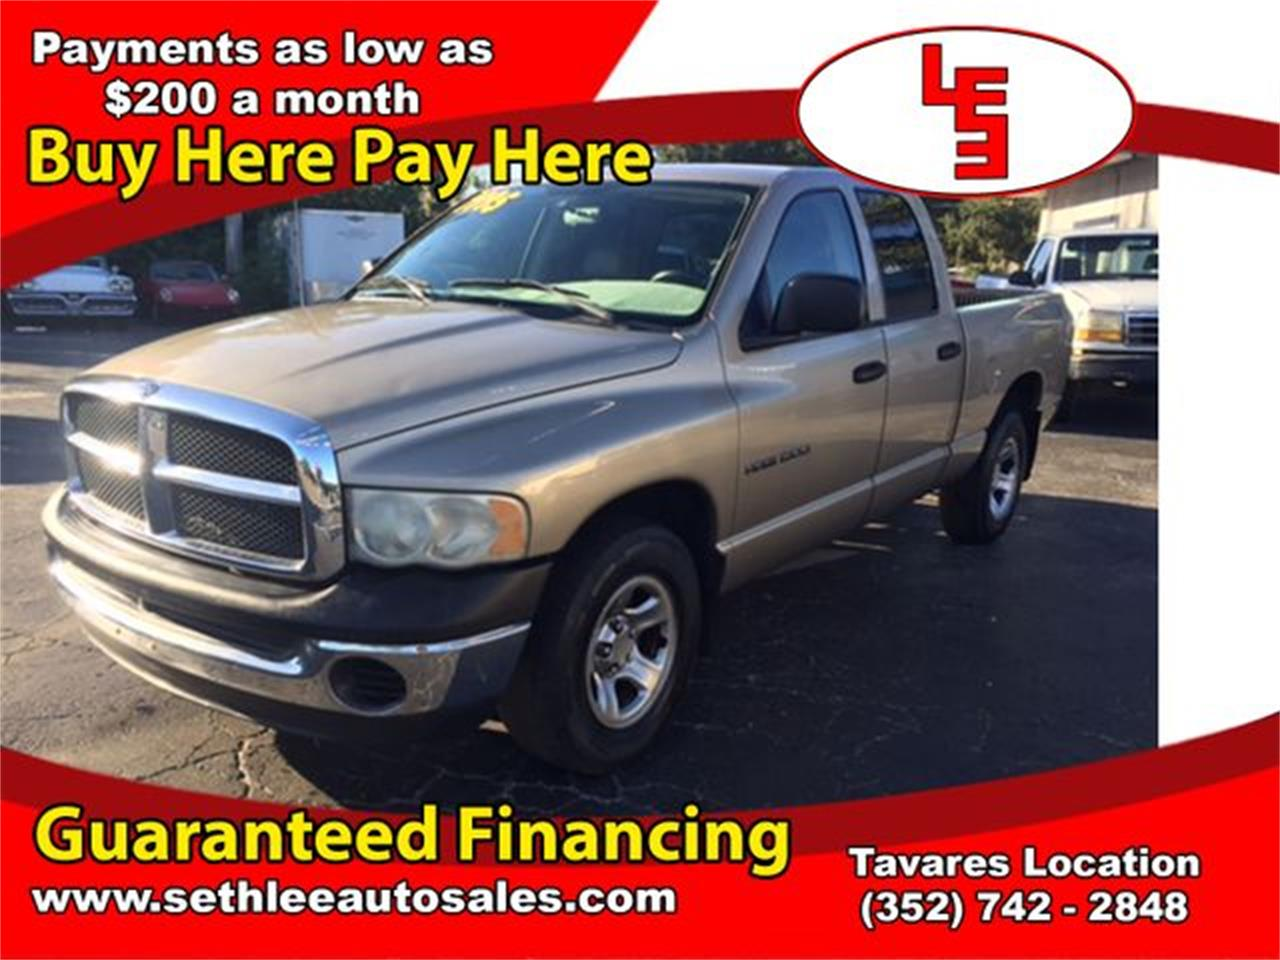 Large Picture of 2003 Ram 1500 located in Florida Offered by Seth Lee Auto Sales - M9PK